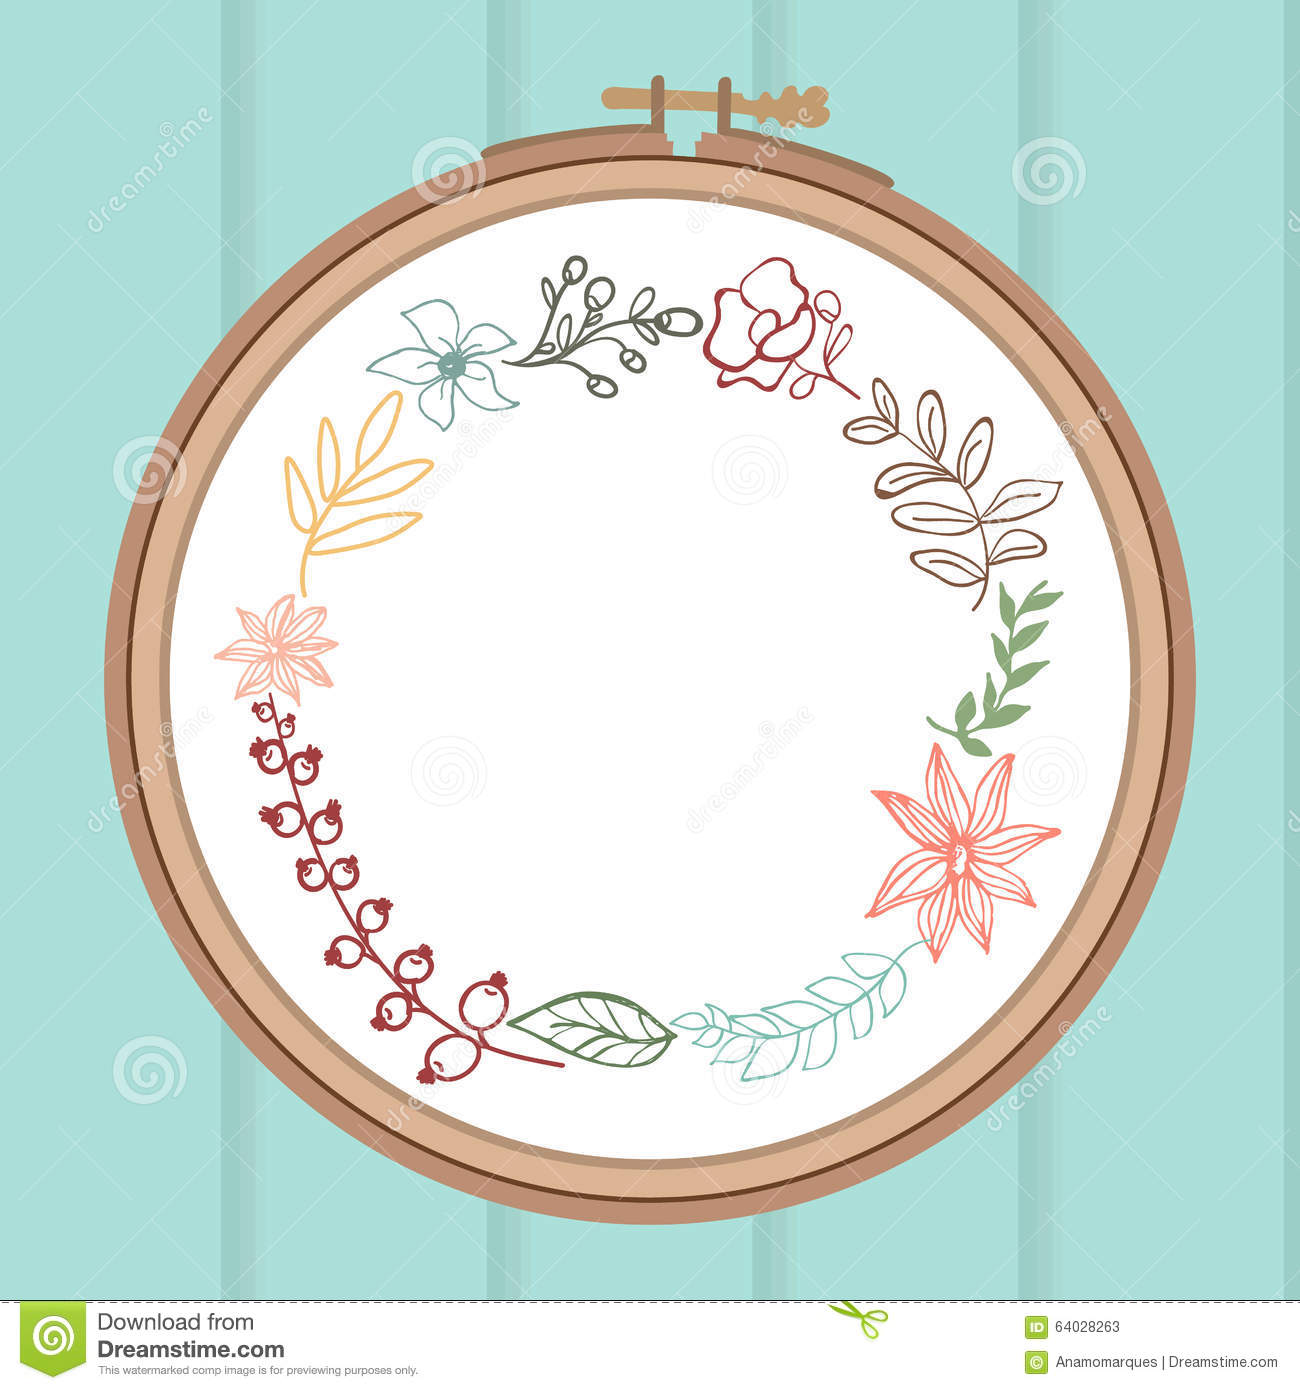 Cute Card With Laurel Flower Bouquet On Embroidery Frame. Stock ...